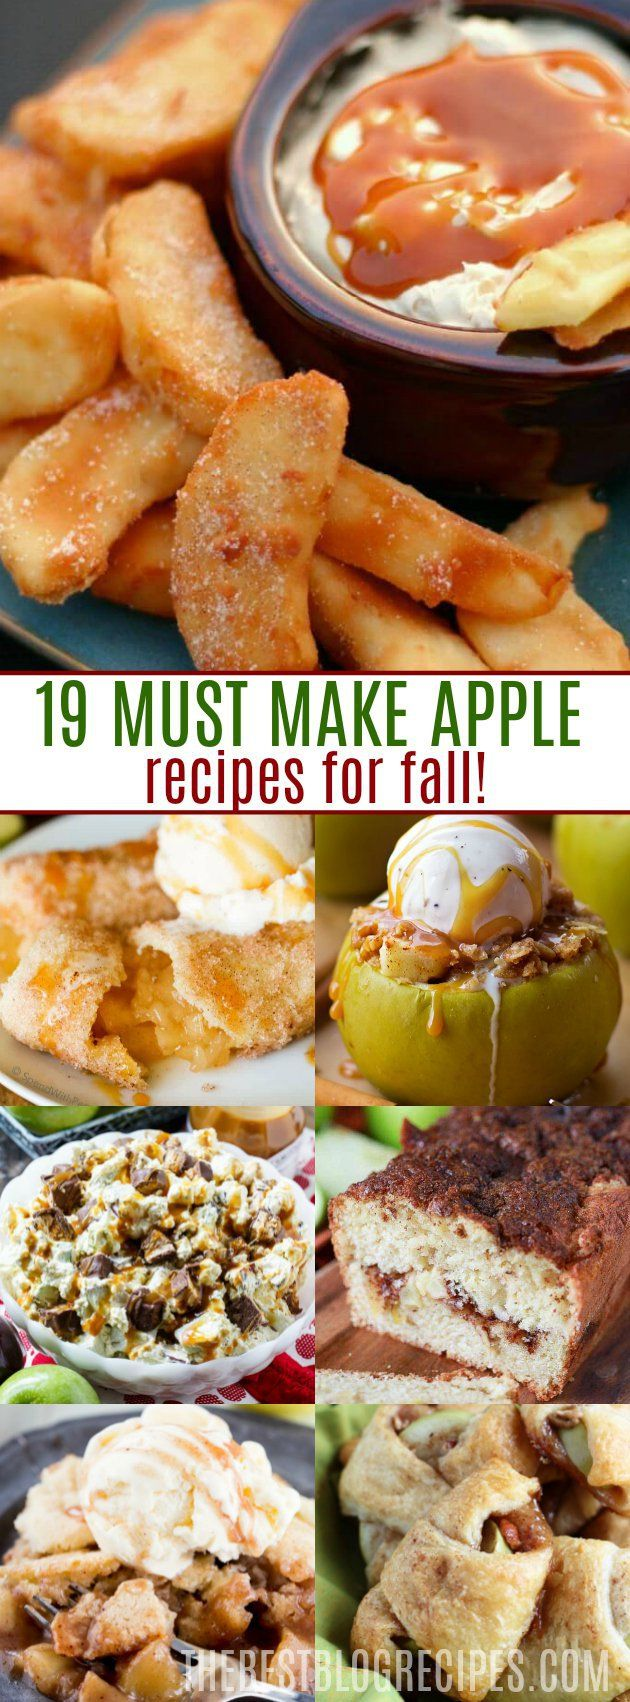 19 MUST MAKE APPLE RECIPES FOR FALL